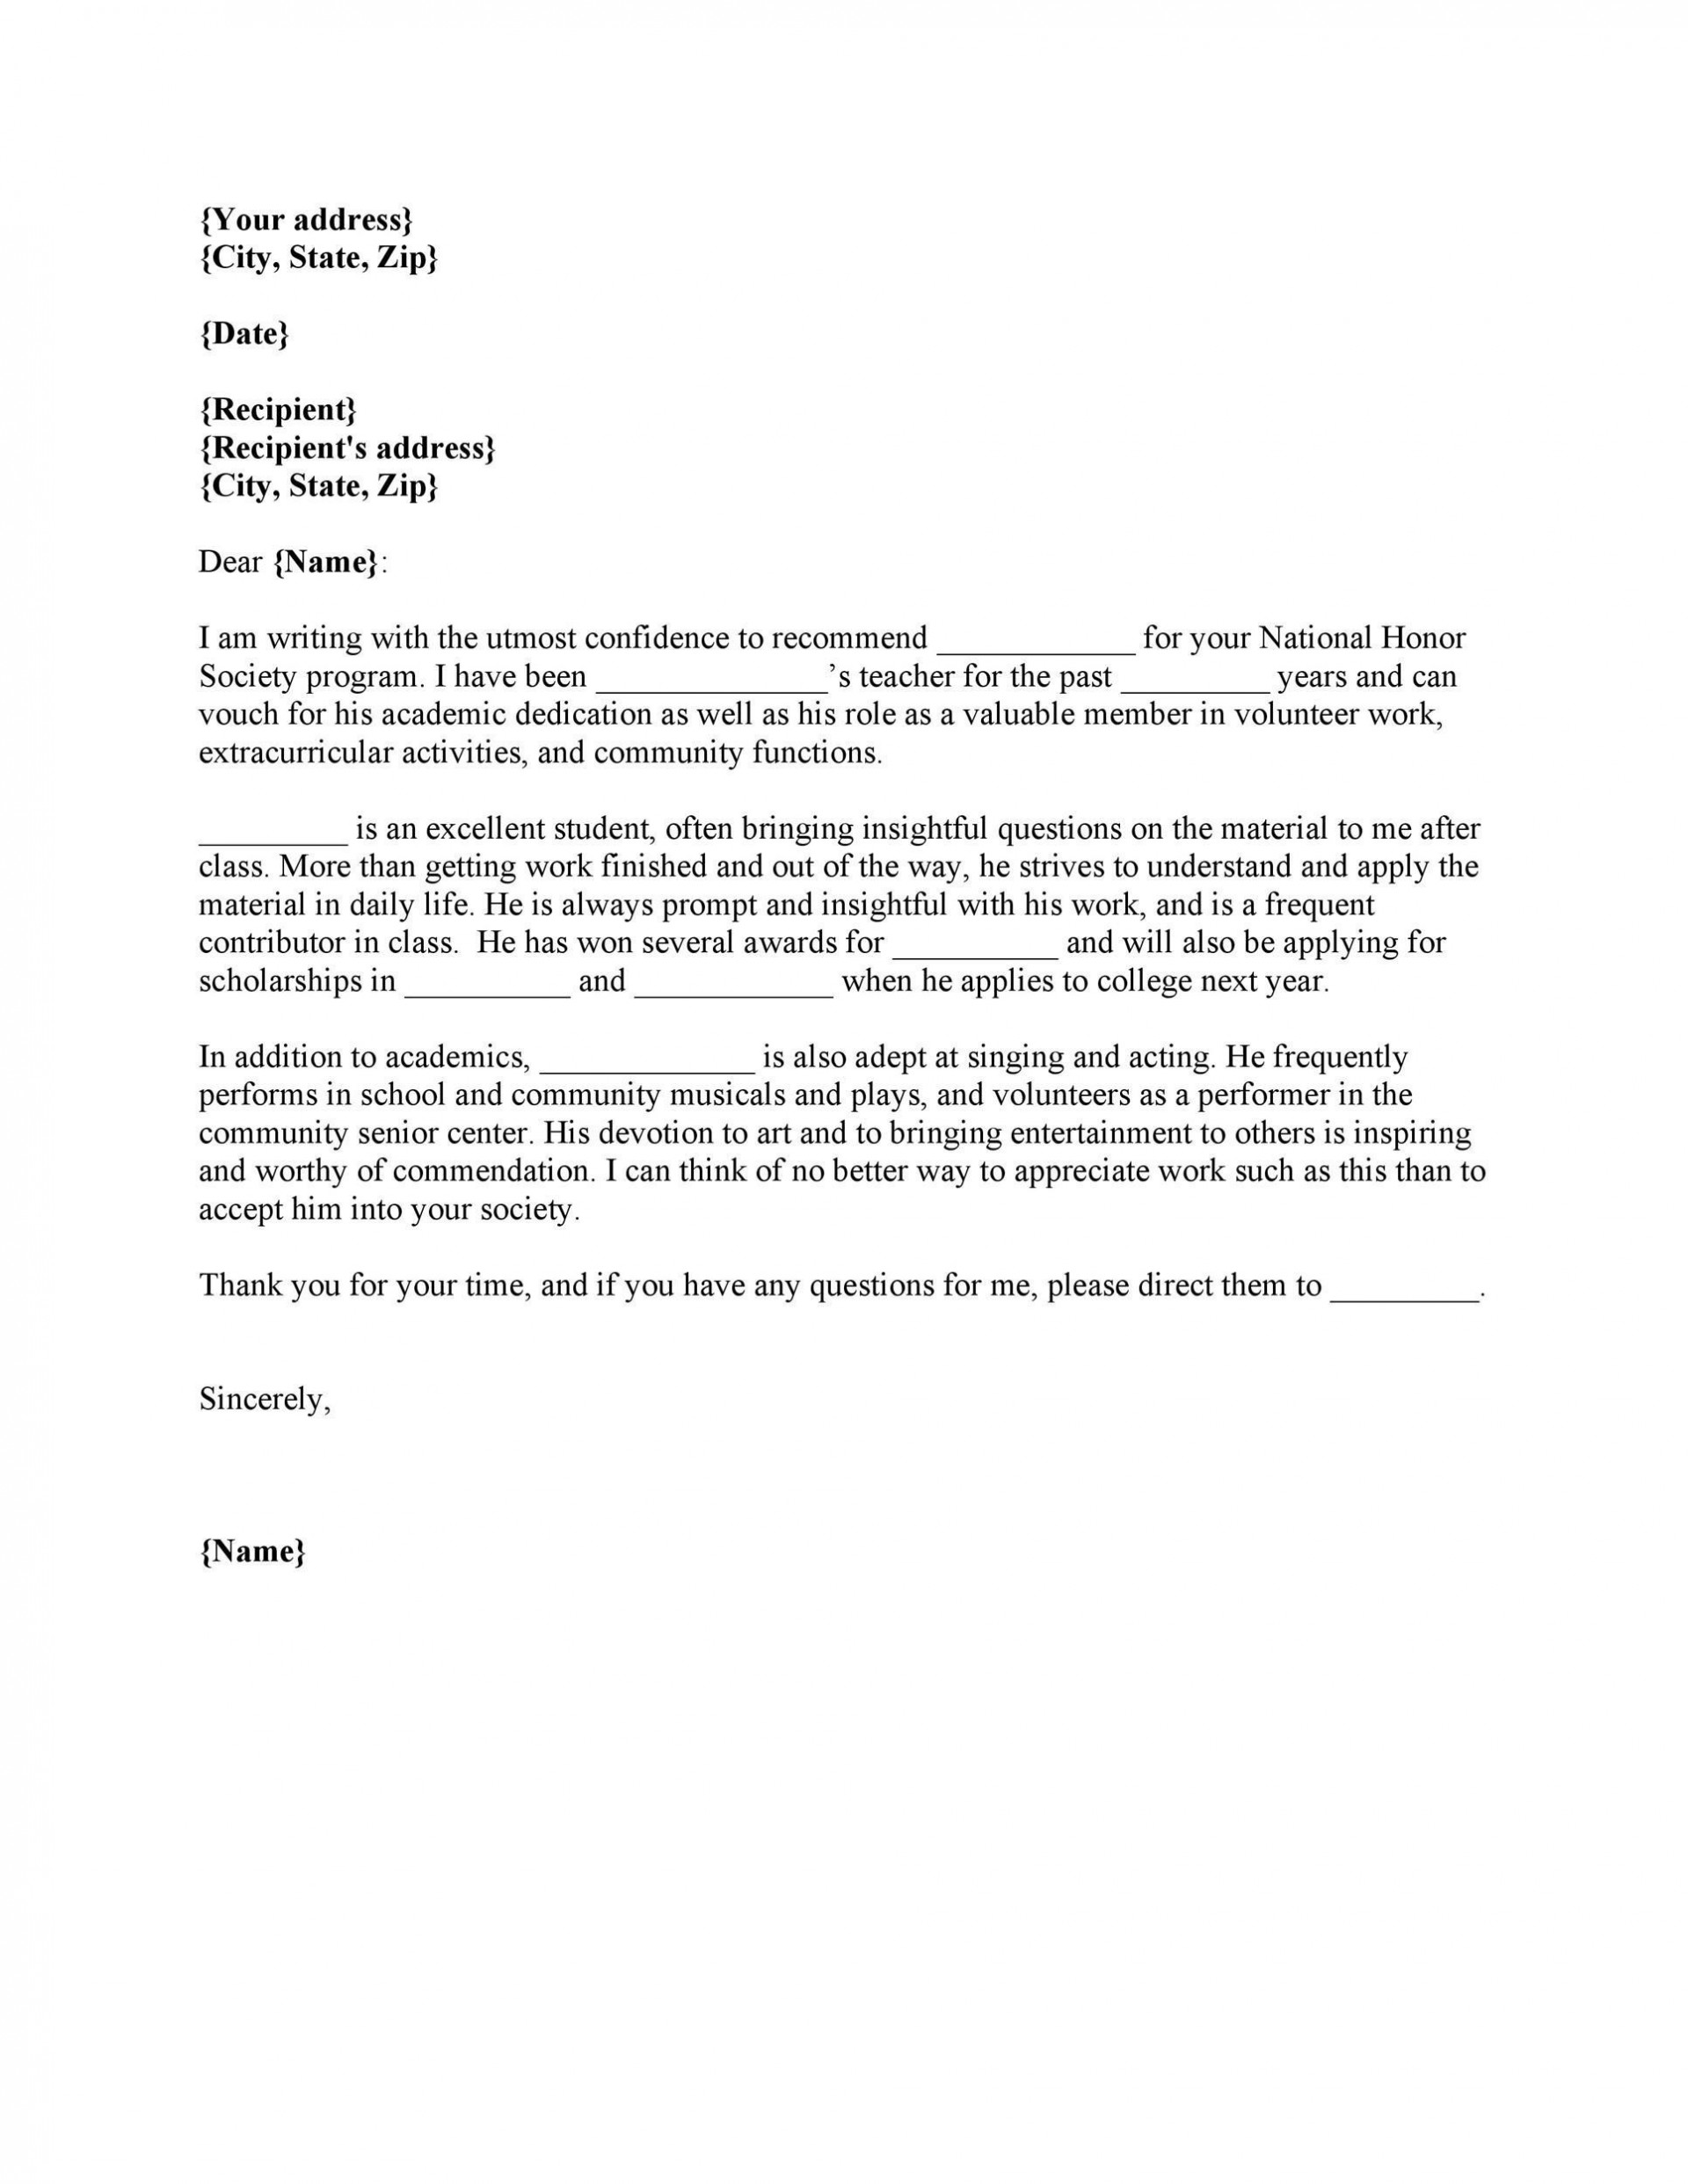 000 Imposing Letter Of Recommendation Template Design  Word Sample For College Admission Student Doc1920